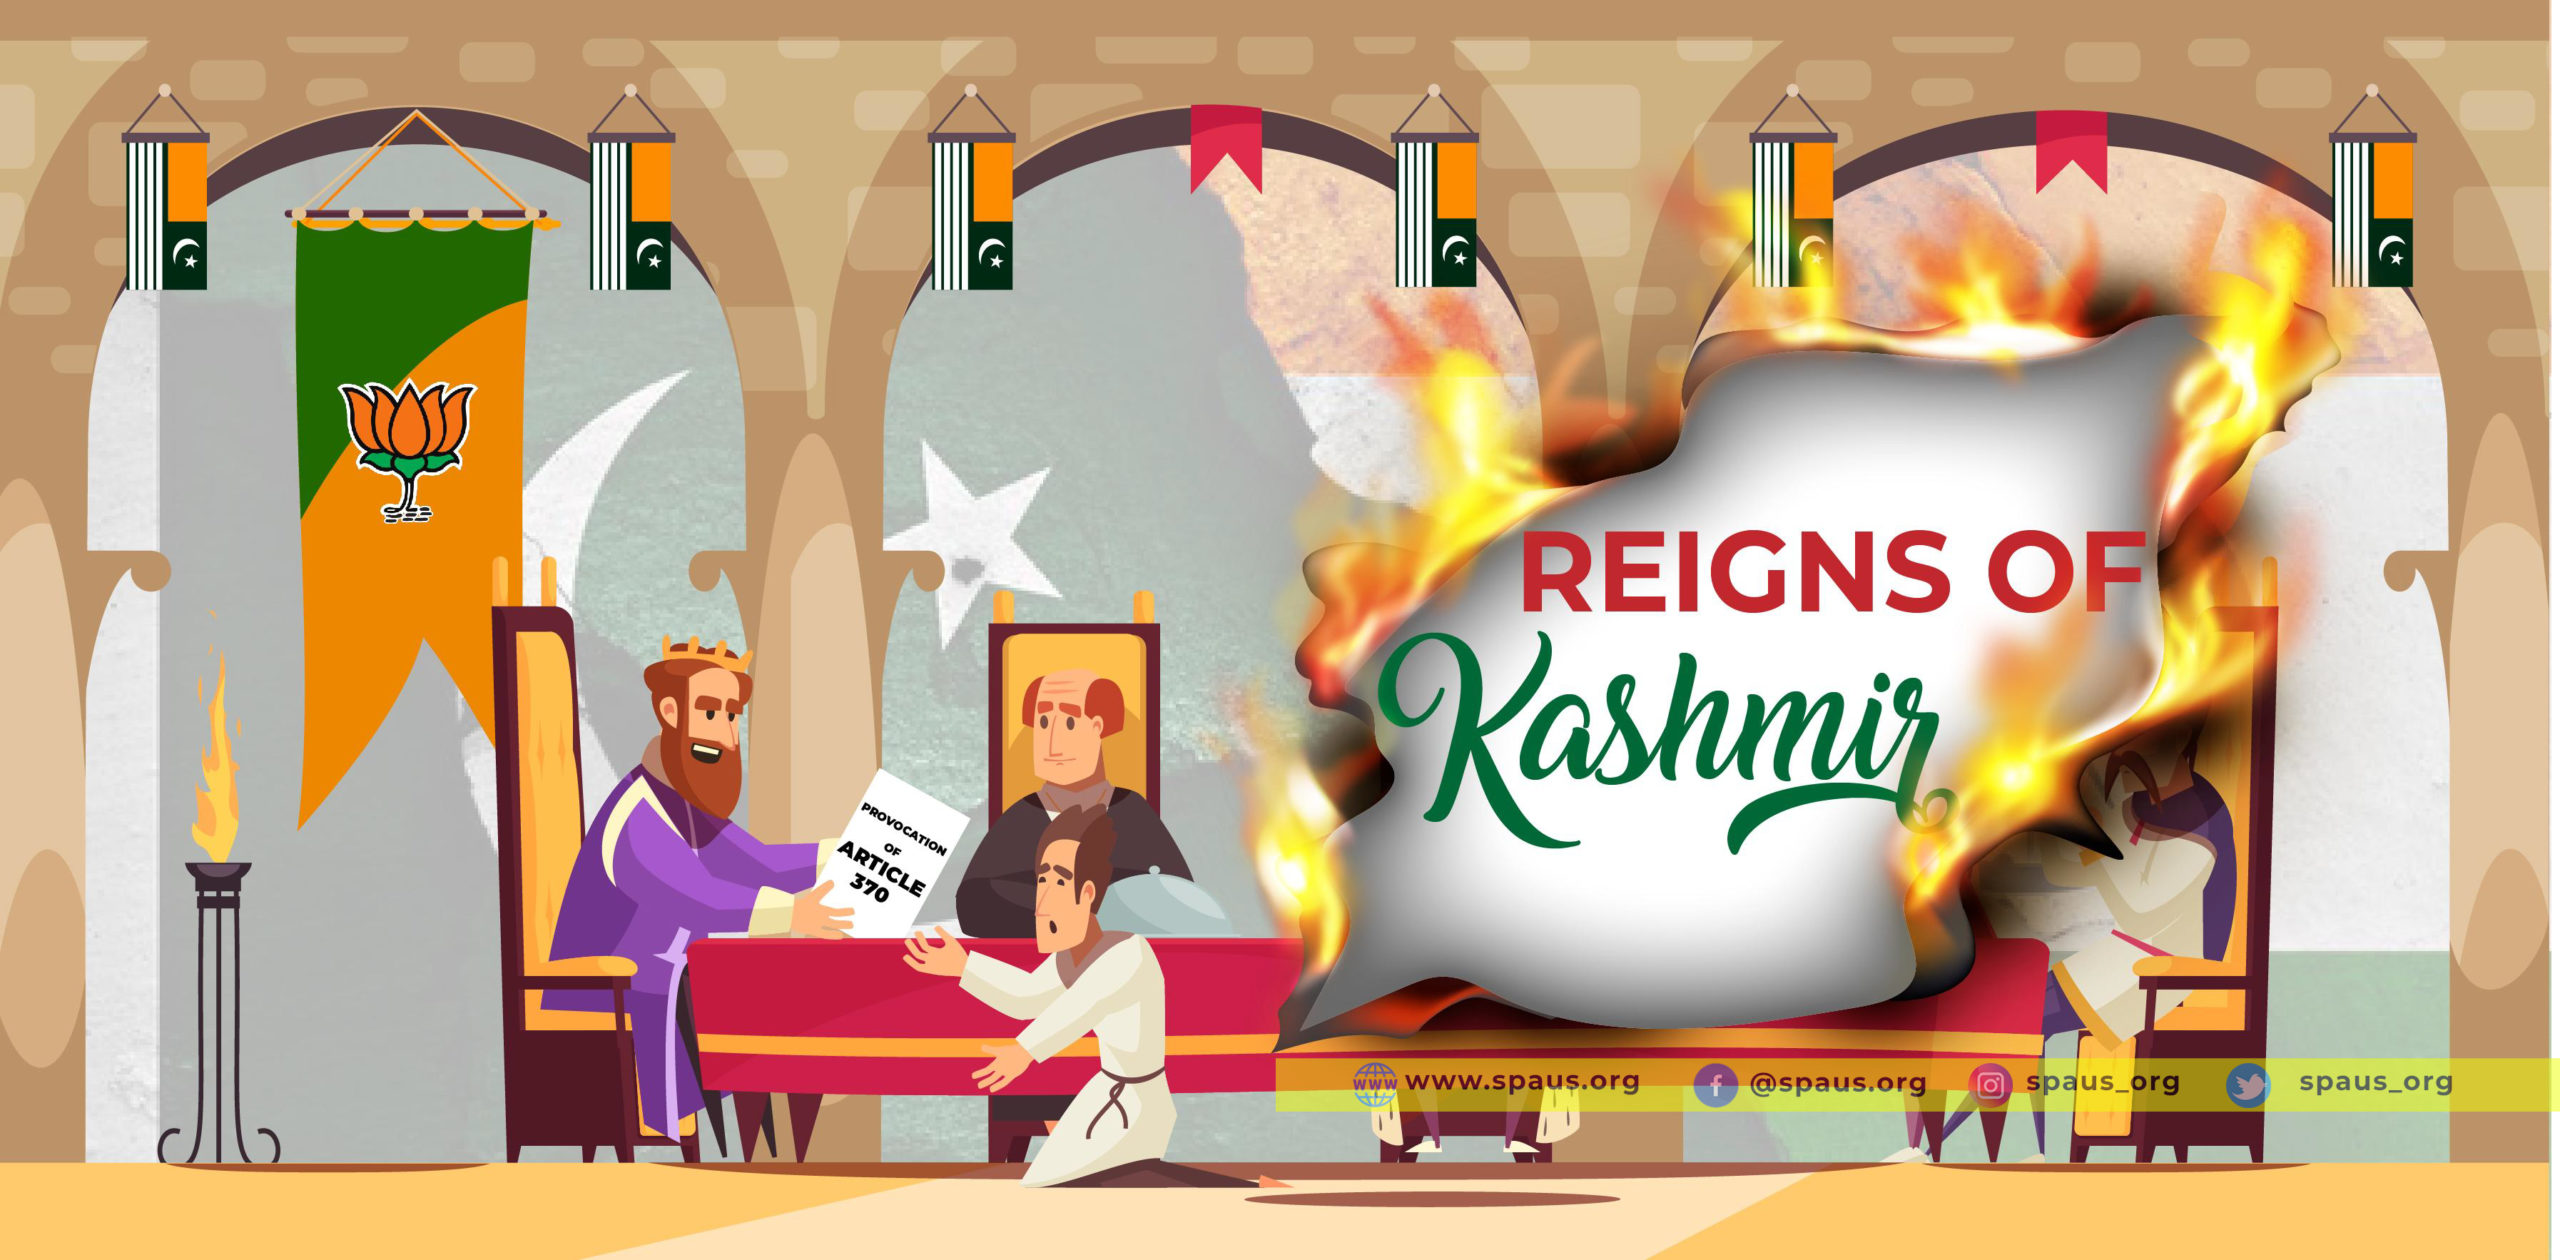 Reigns of Kashmir